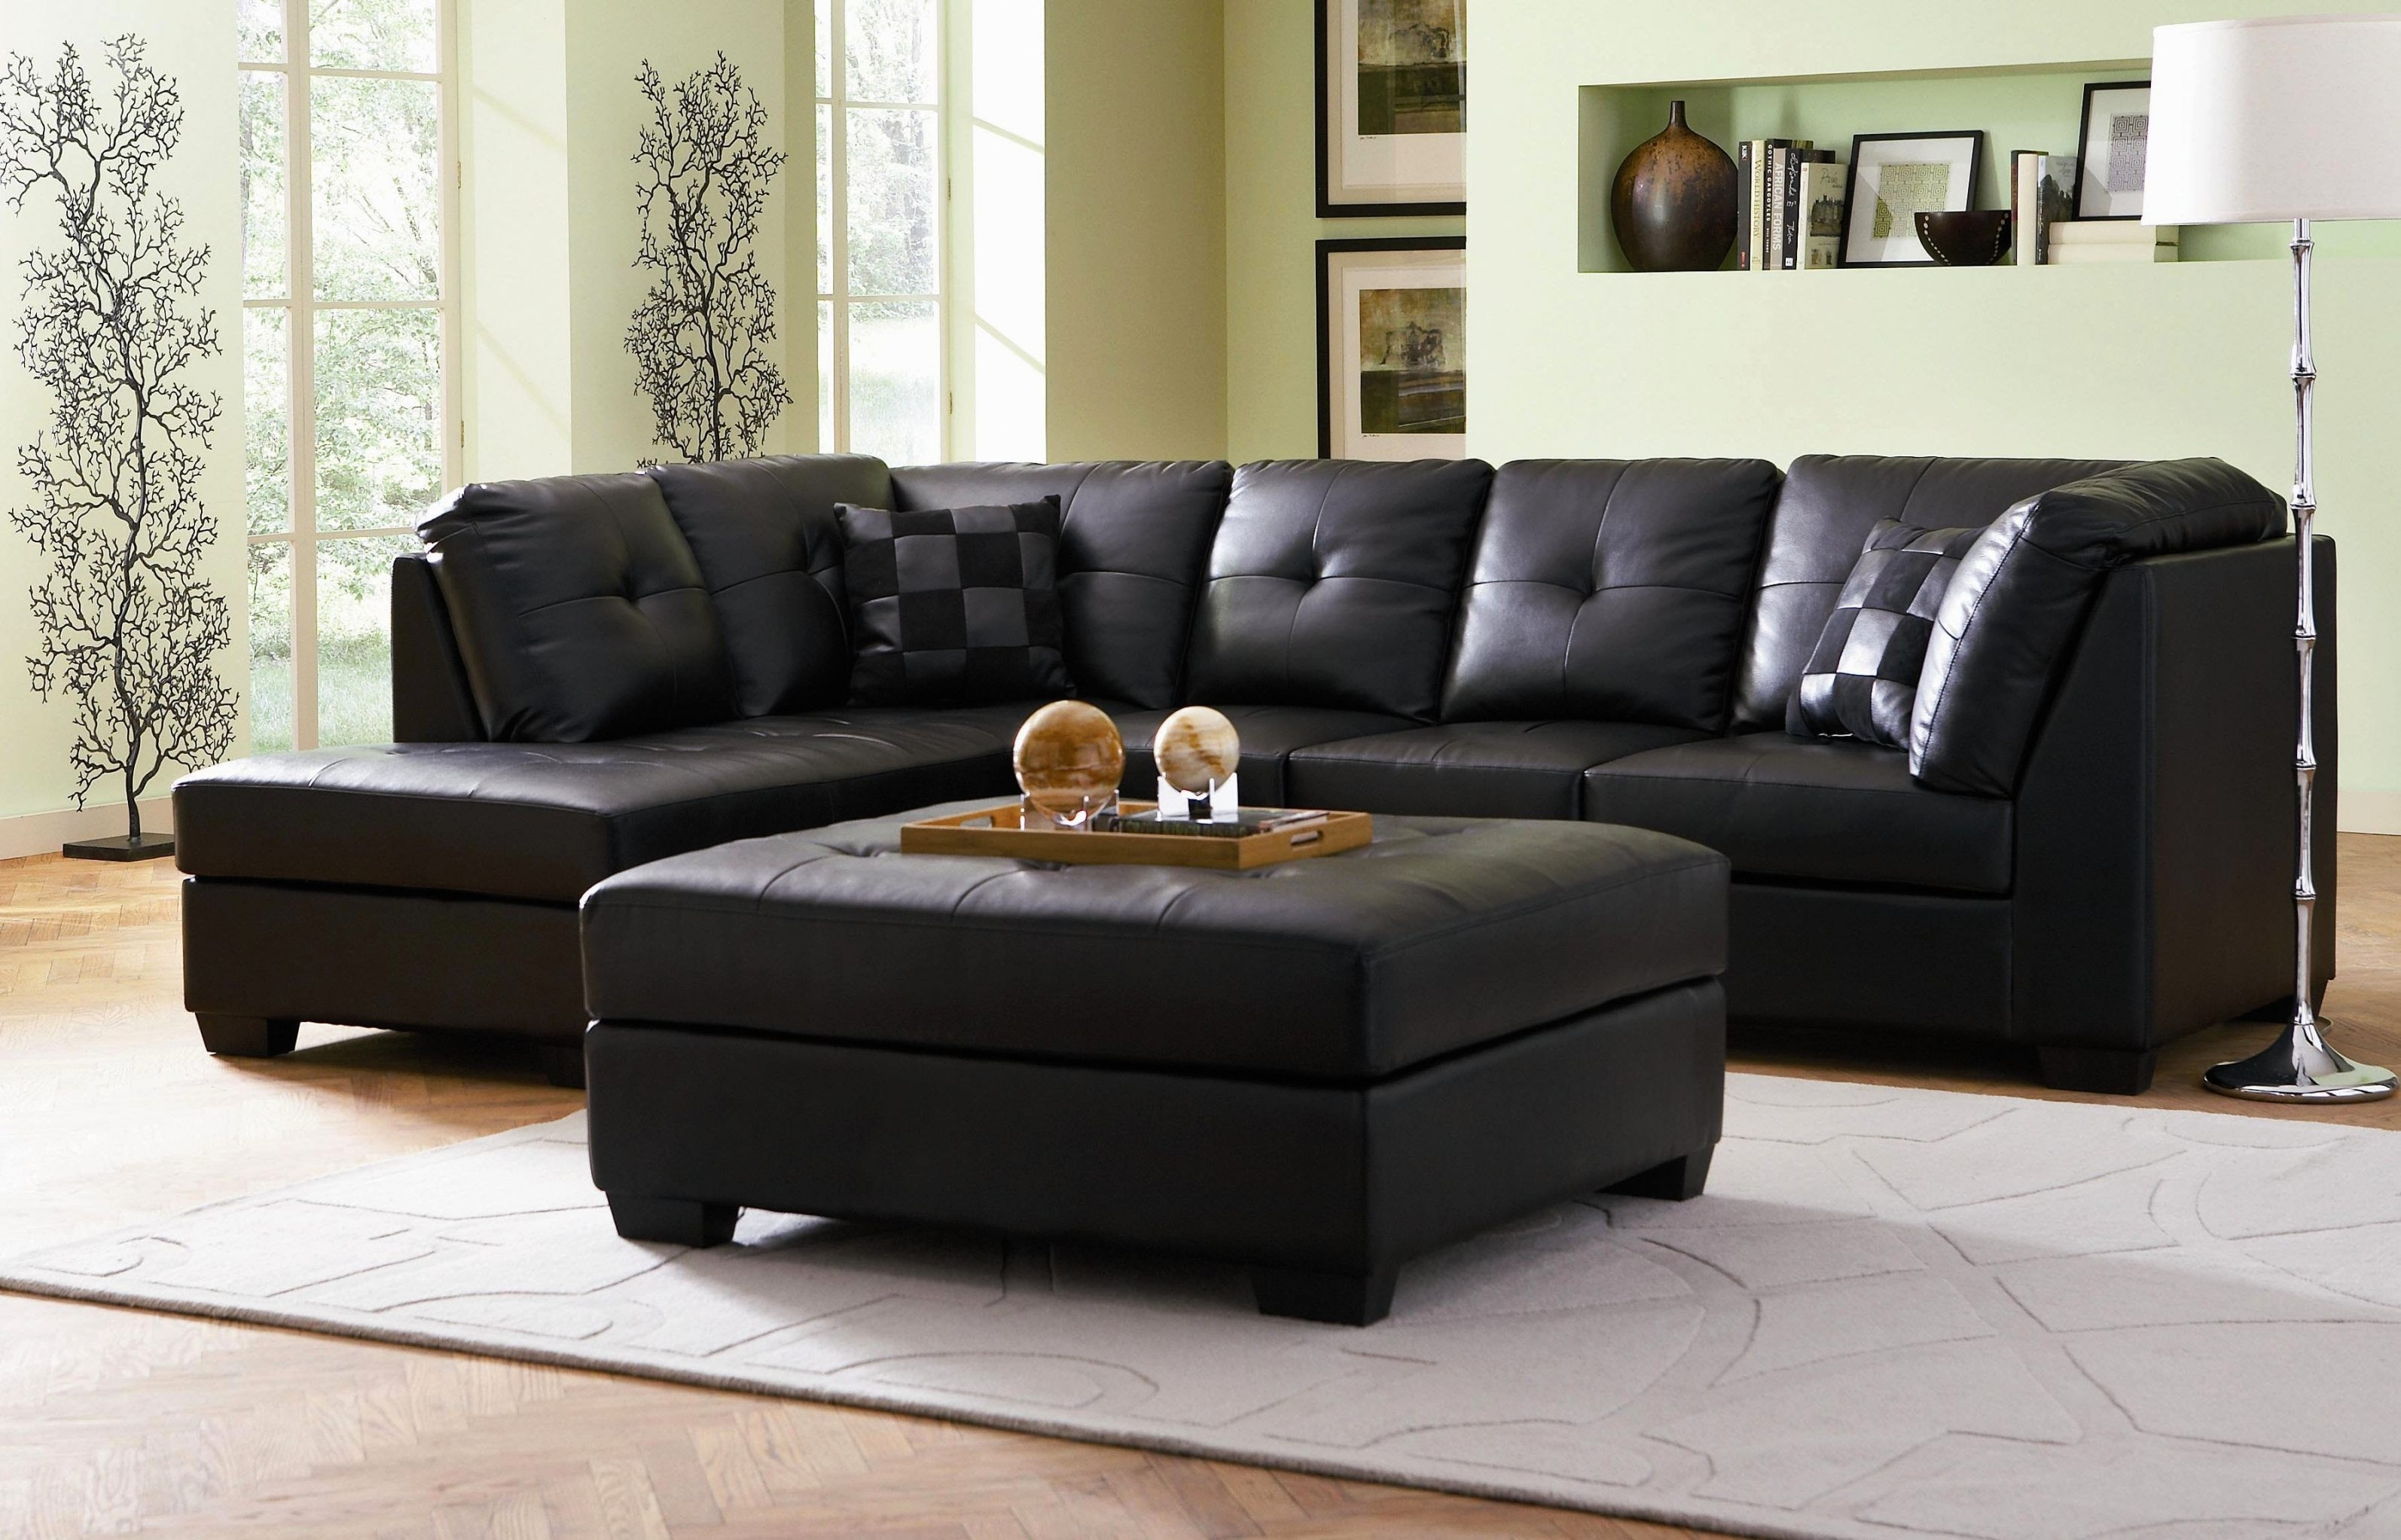 Superior Affordable Sectionals Sofas #2 Remarkable Cheap Sectional Regarding Denver Sectional Sofas (Image 10 of 10)